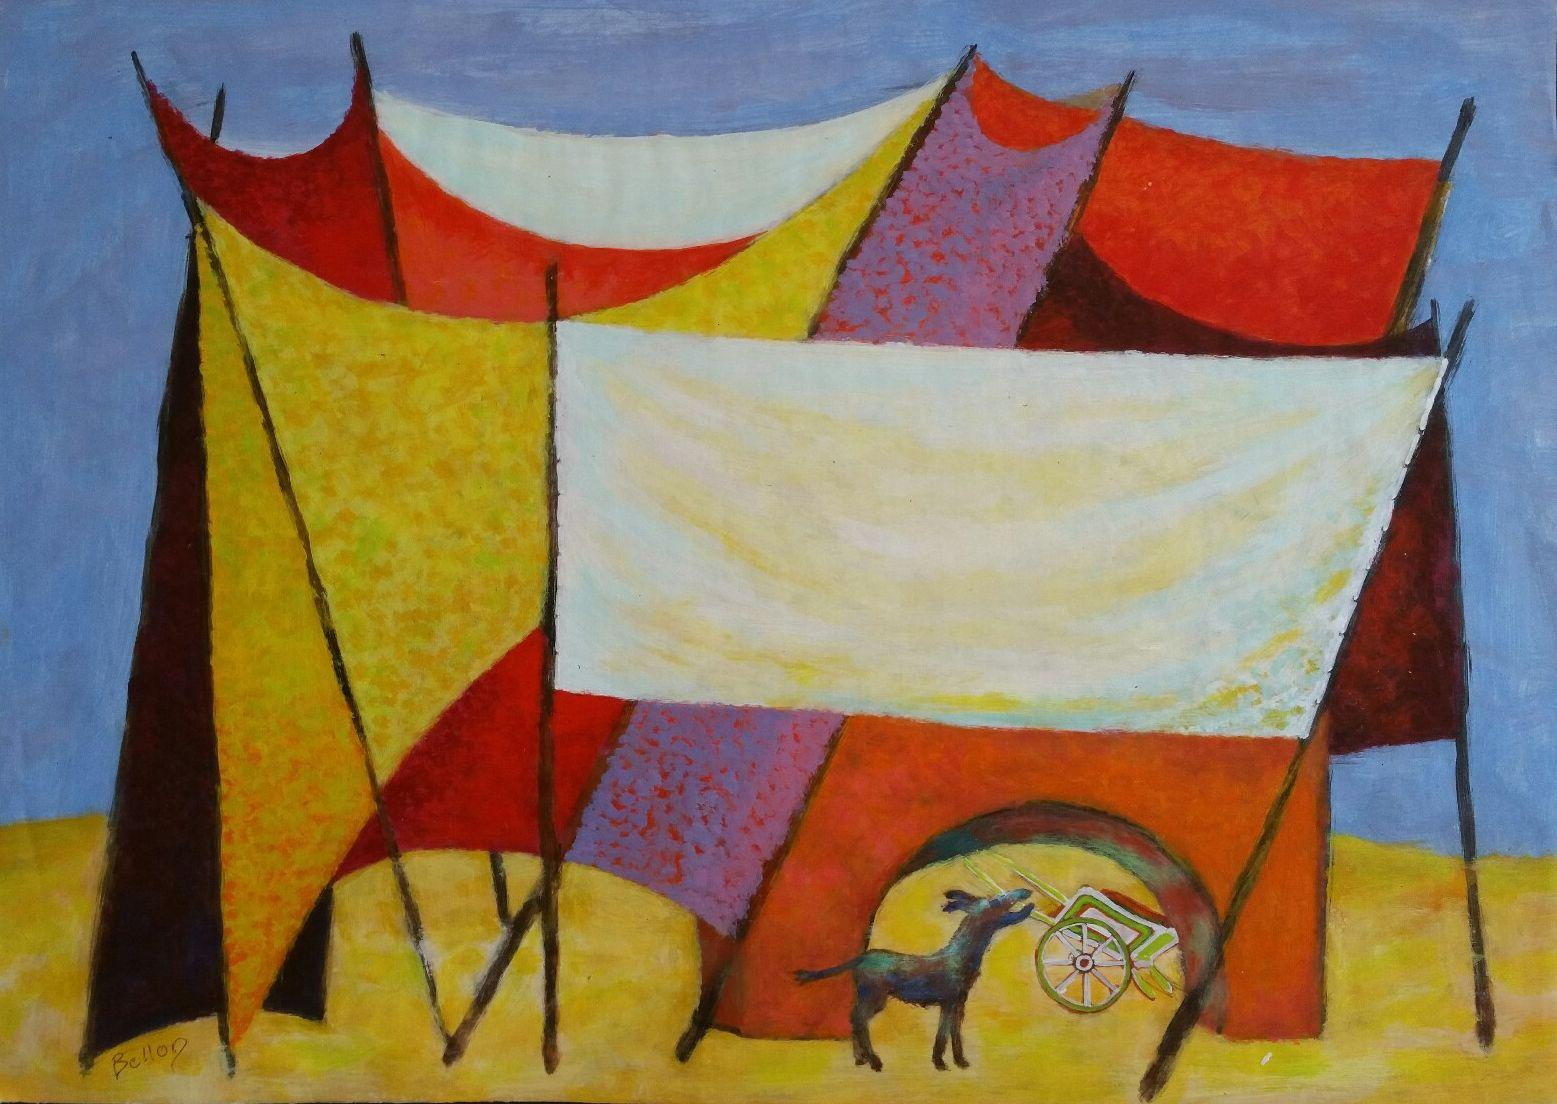 French Neo-Impressionist Modernist Dog in a Tent Mid 20th Century Painting